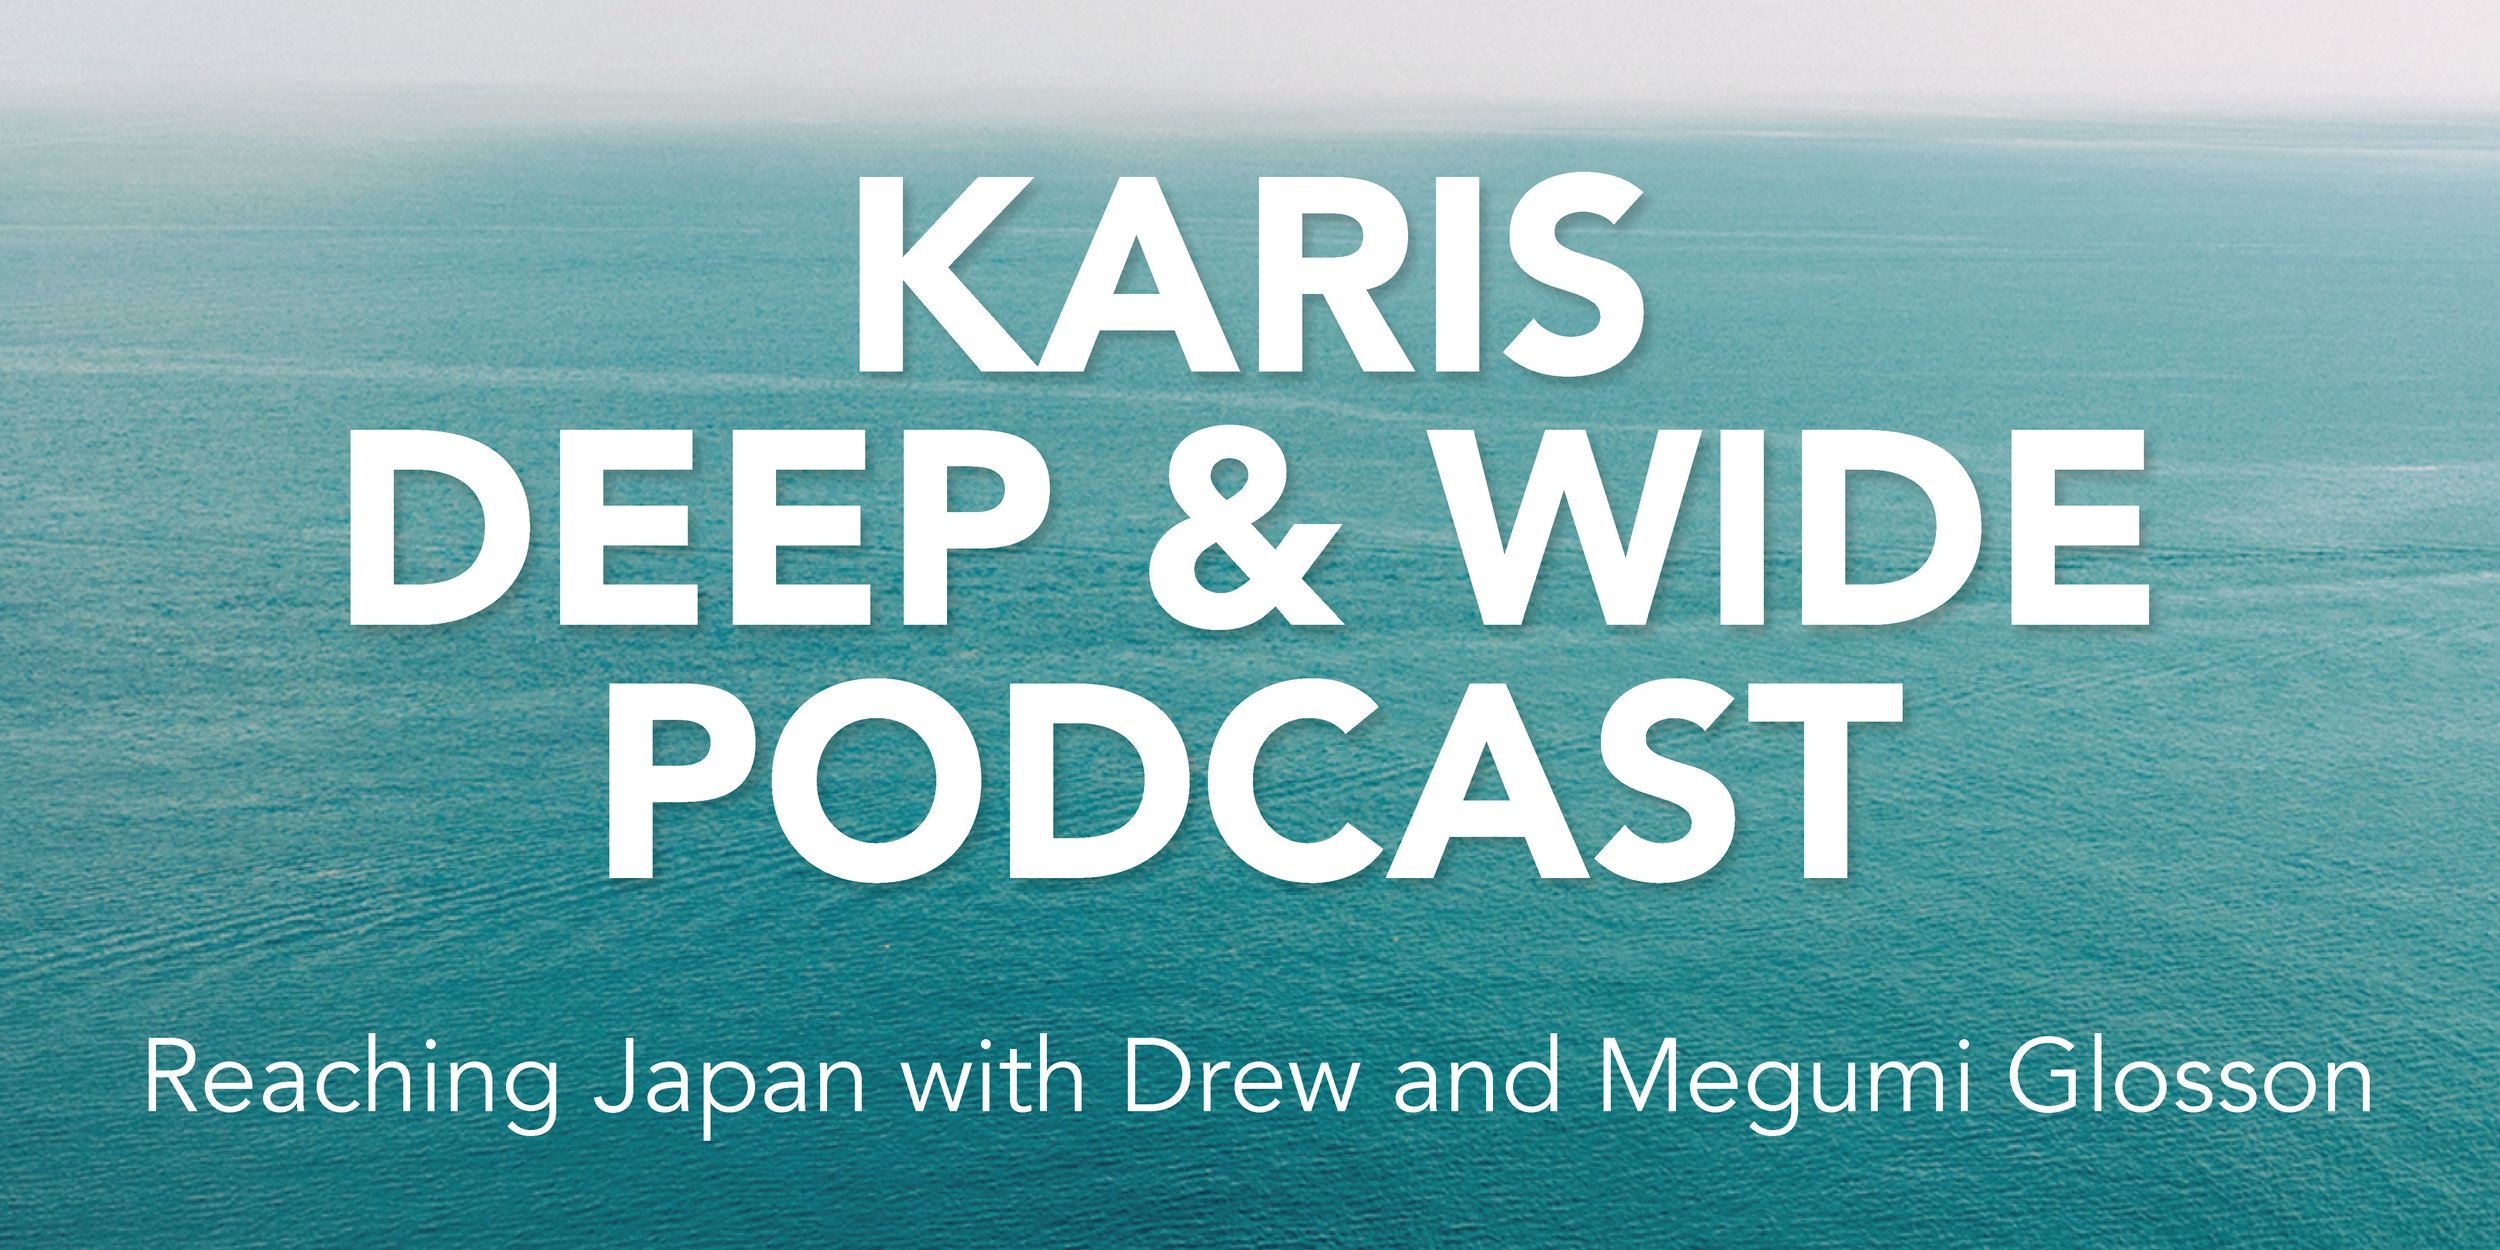 reaching-japan-with-drew-and-megumi-glosson